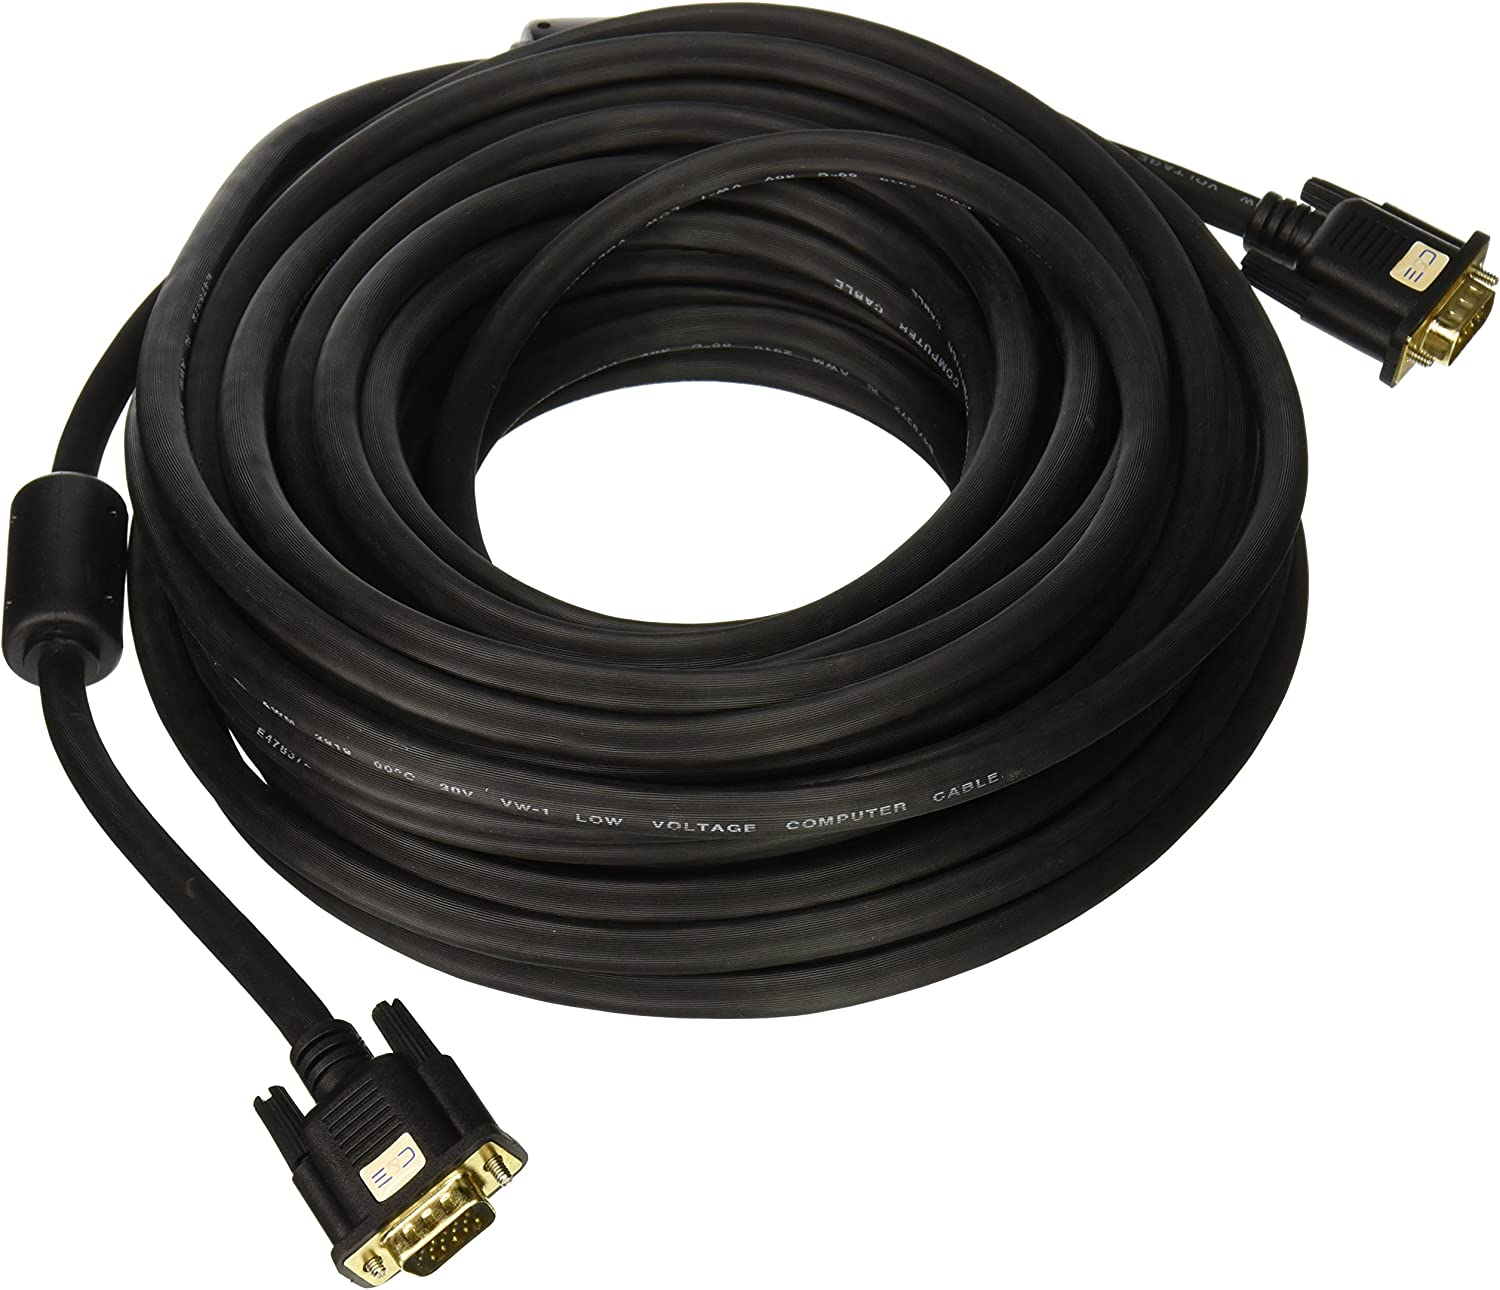 10ft//3m Projector Cable VGA//SVGA HD15 Male to Male Video Coaxial Monitor Cable with Ferrite Cores Gold Plated Compatible for Projectors Displays HDTVs